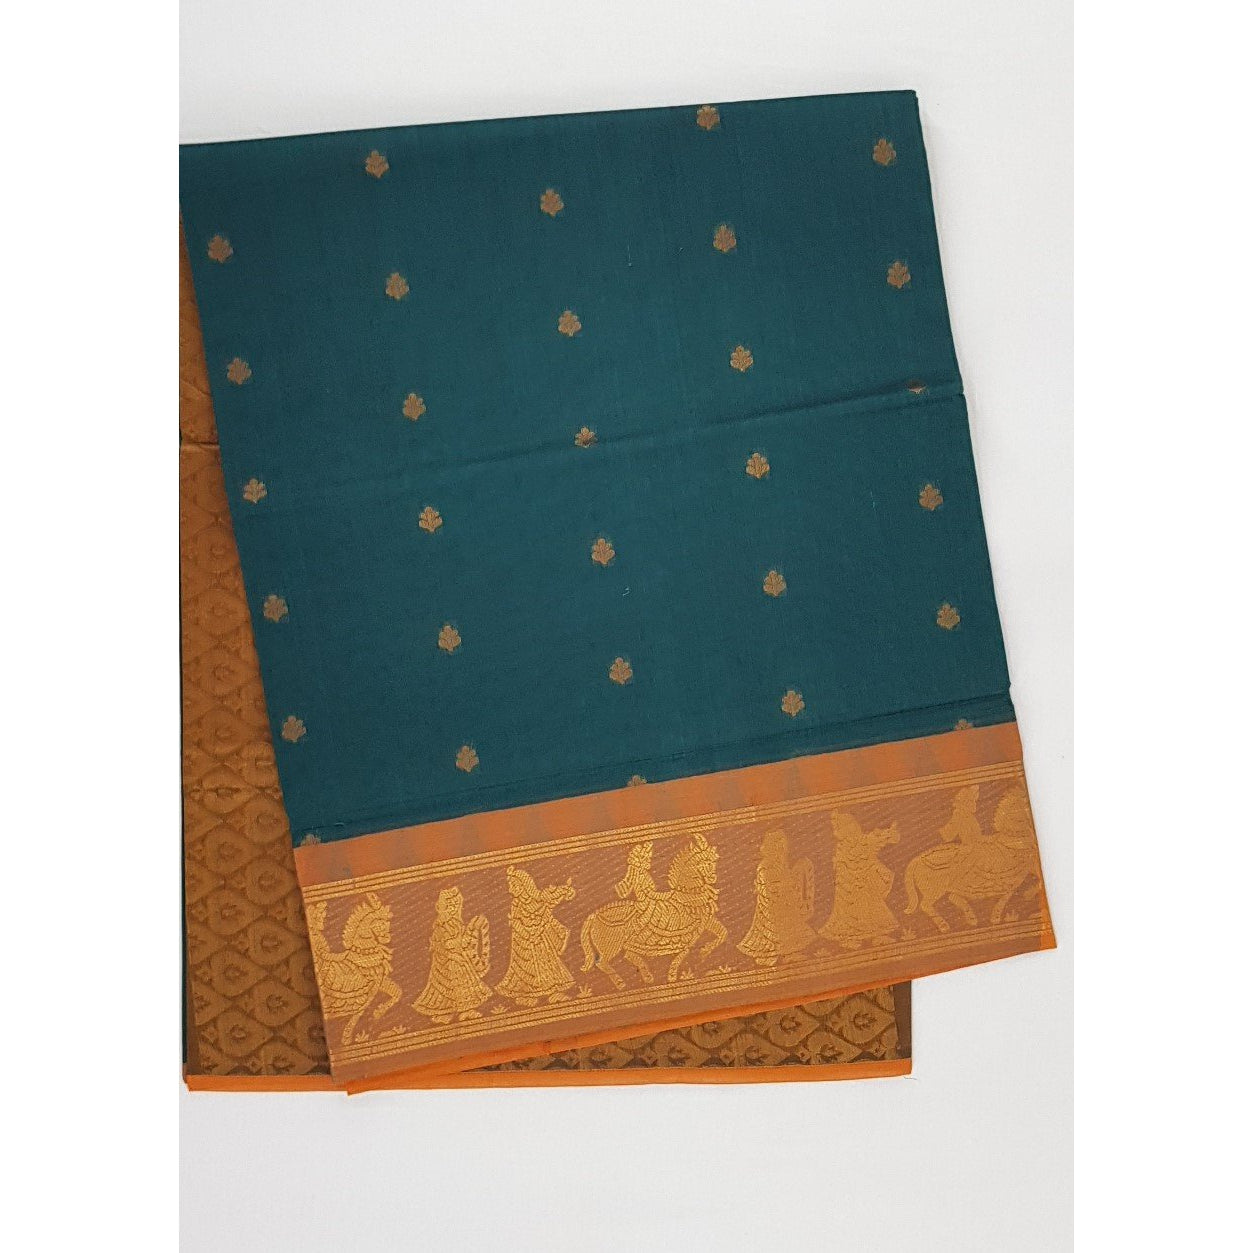 Aqua Blue Color Handwoven Venkatagiri Cotton Silk Saree - Vinshika